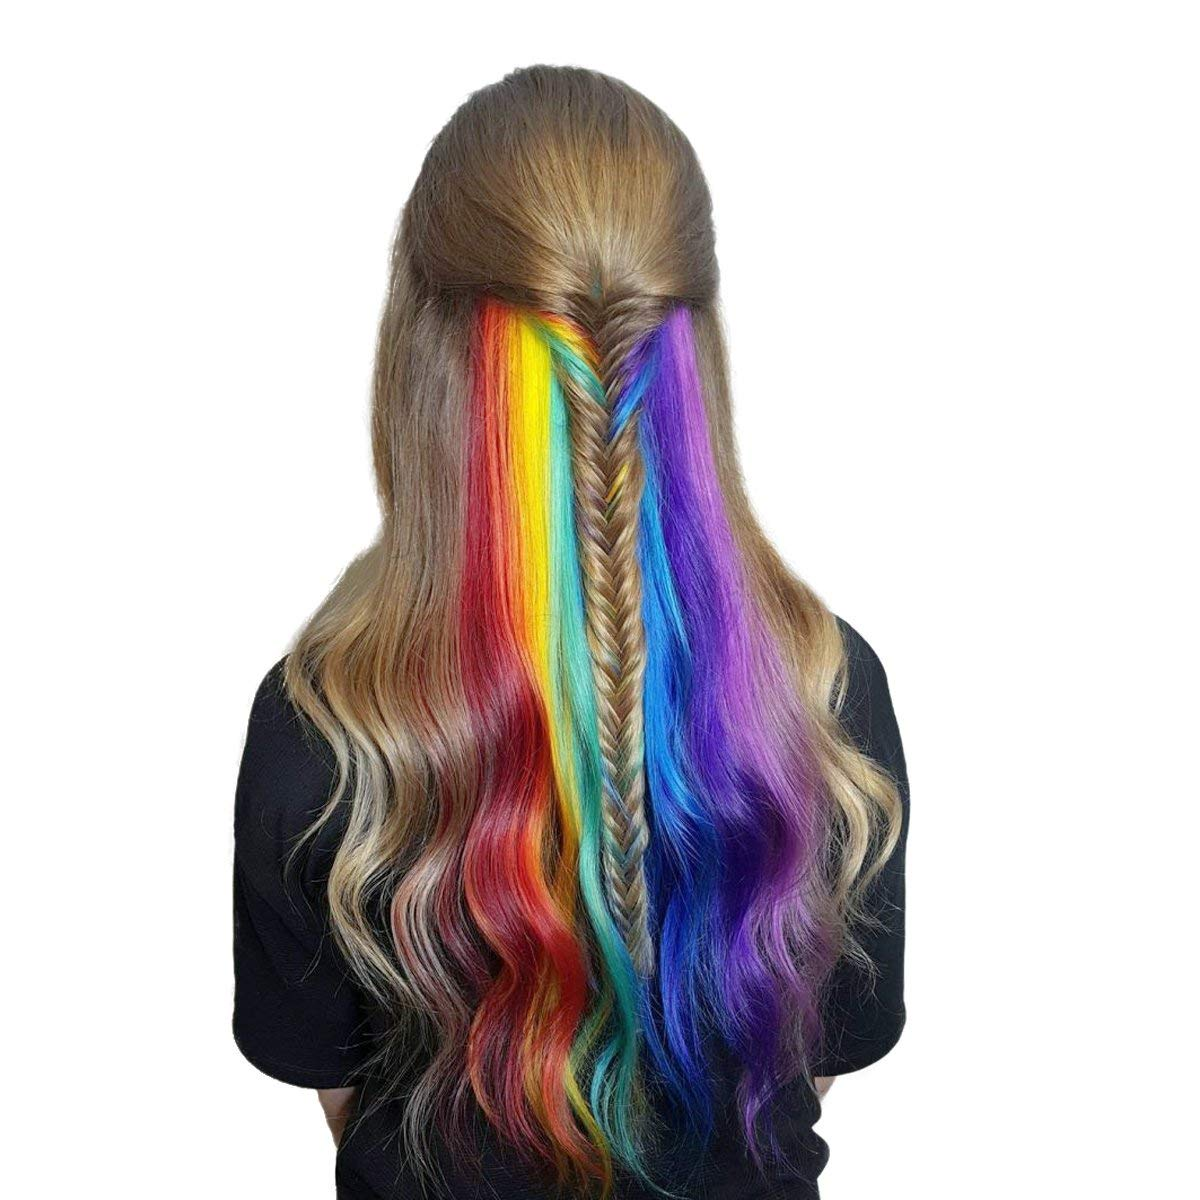 JINKAILI 22 Inches Straight Colored Clip in Hair Extensions Party Highlight Multiple Col ...